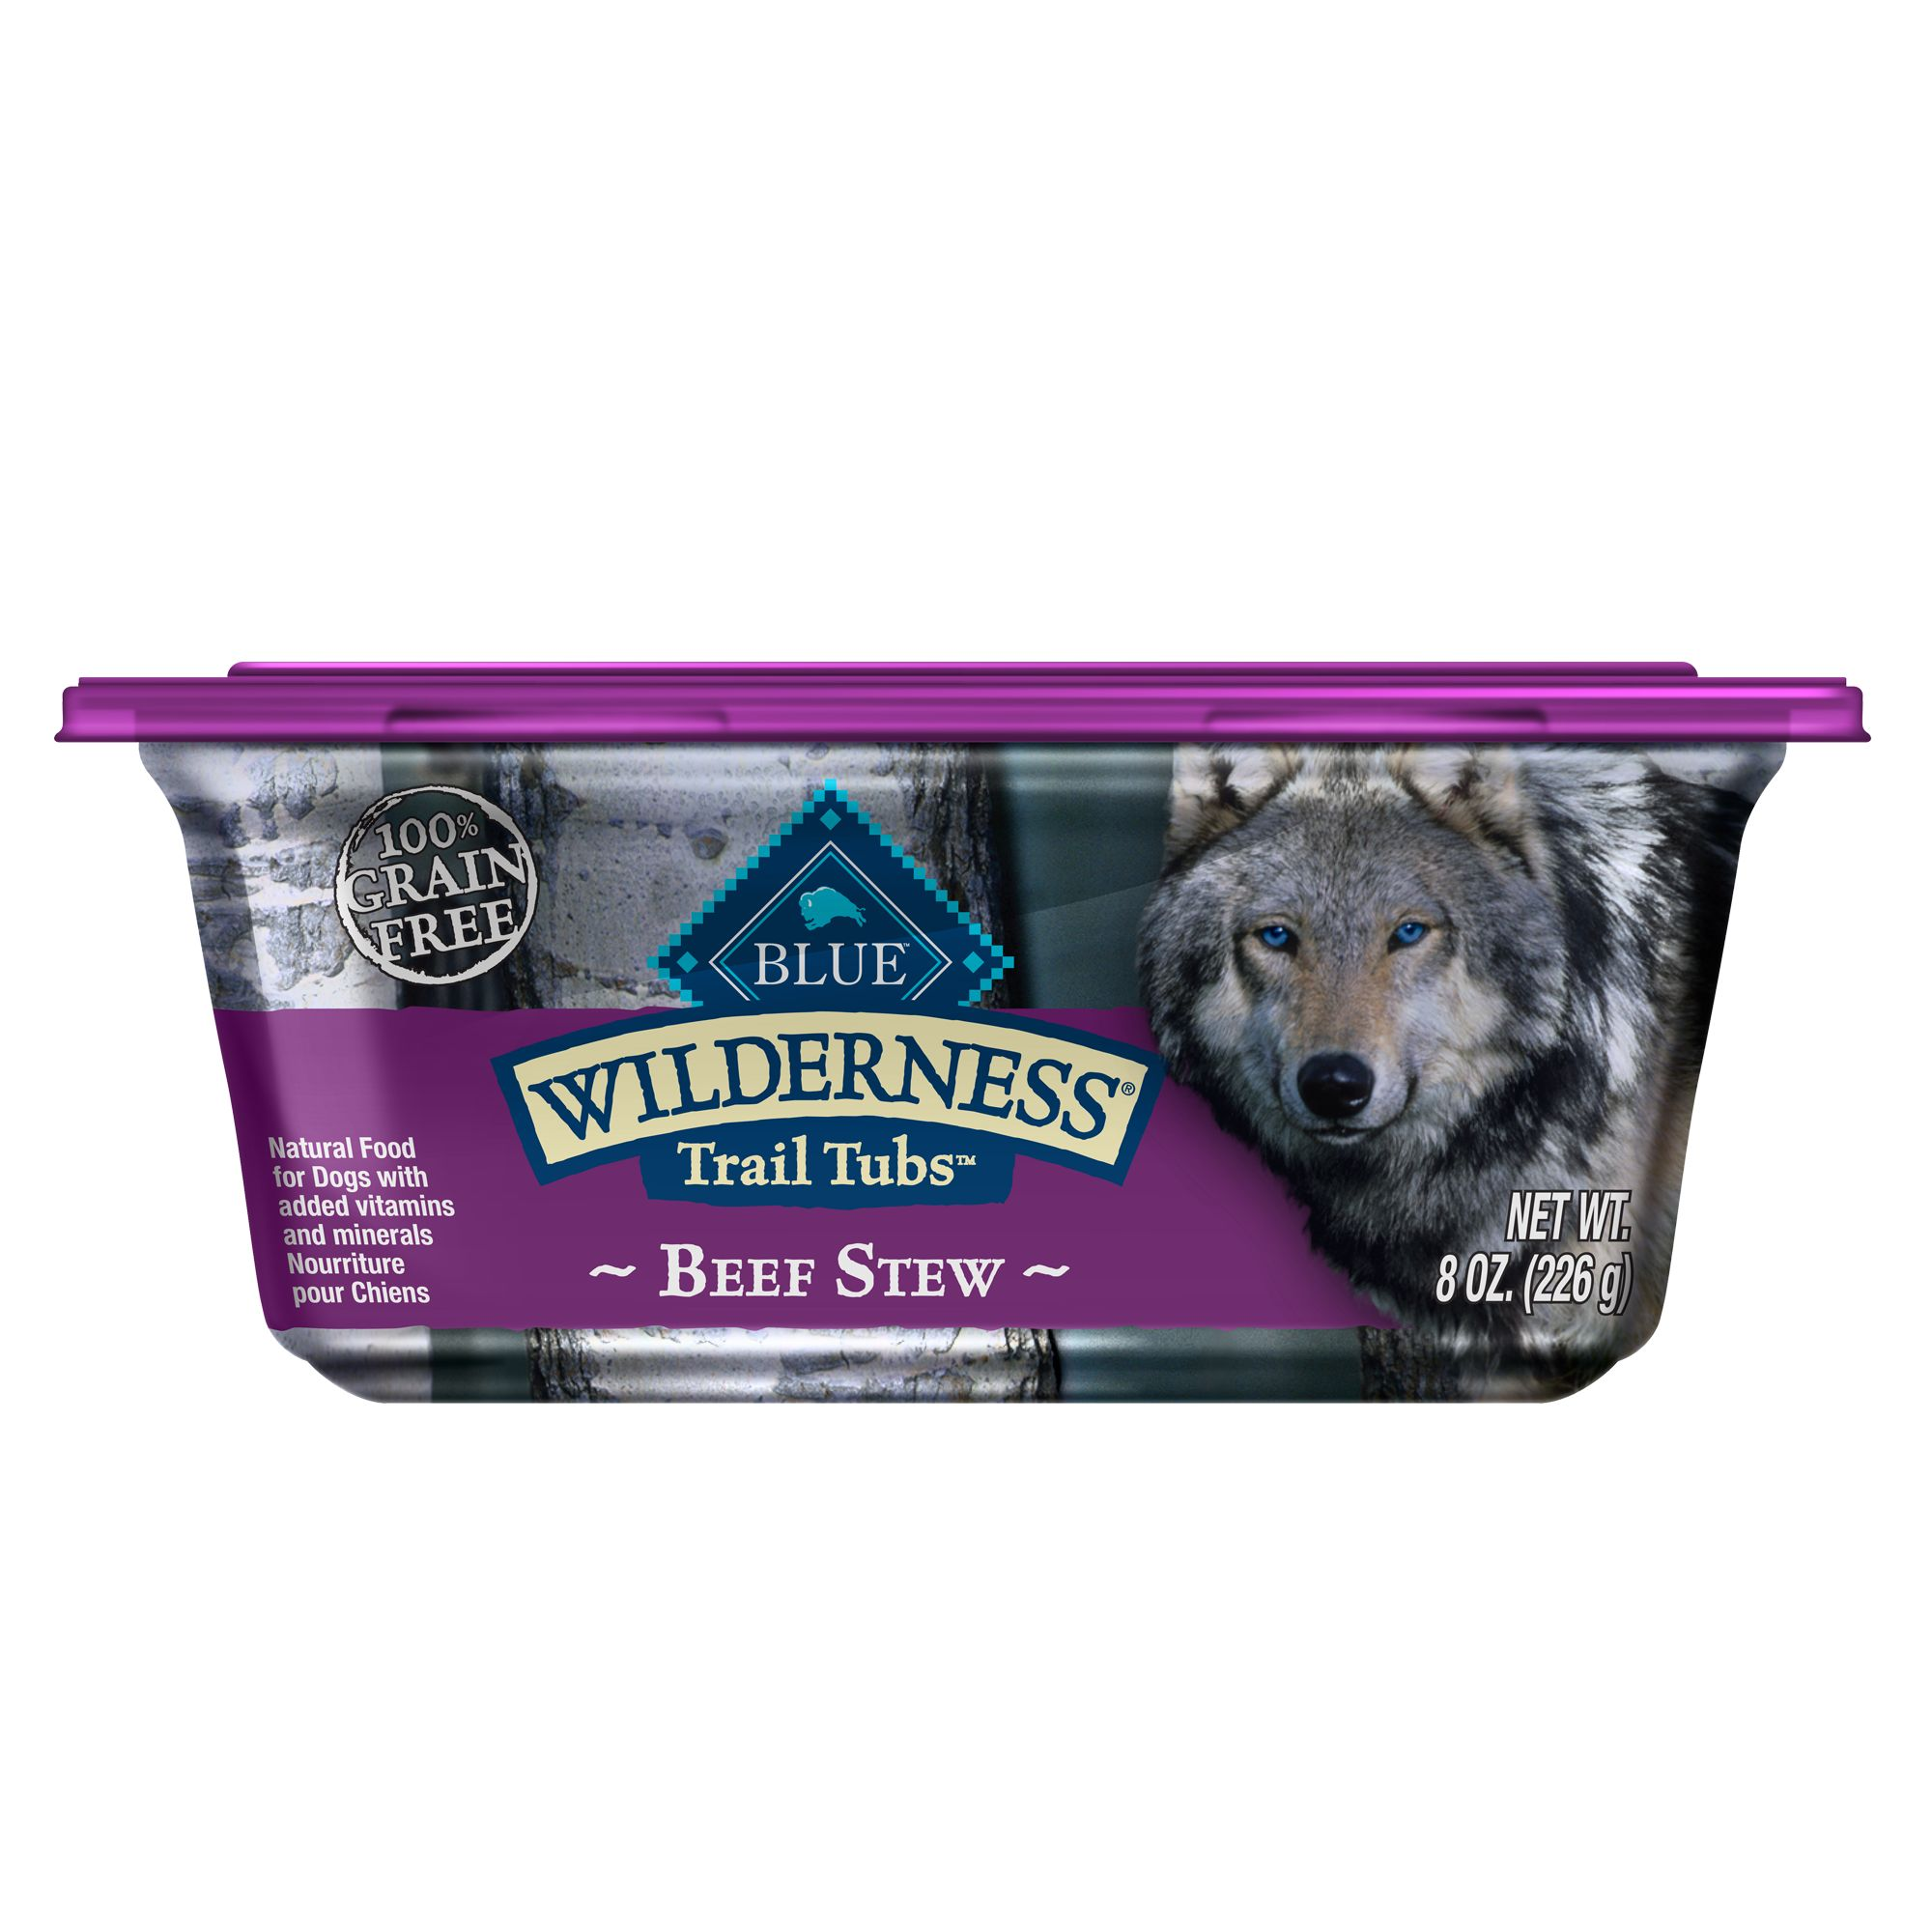 Blue Wilderness Trail Tubs Dog Food Natural Grain Free Beef